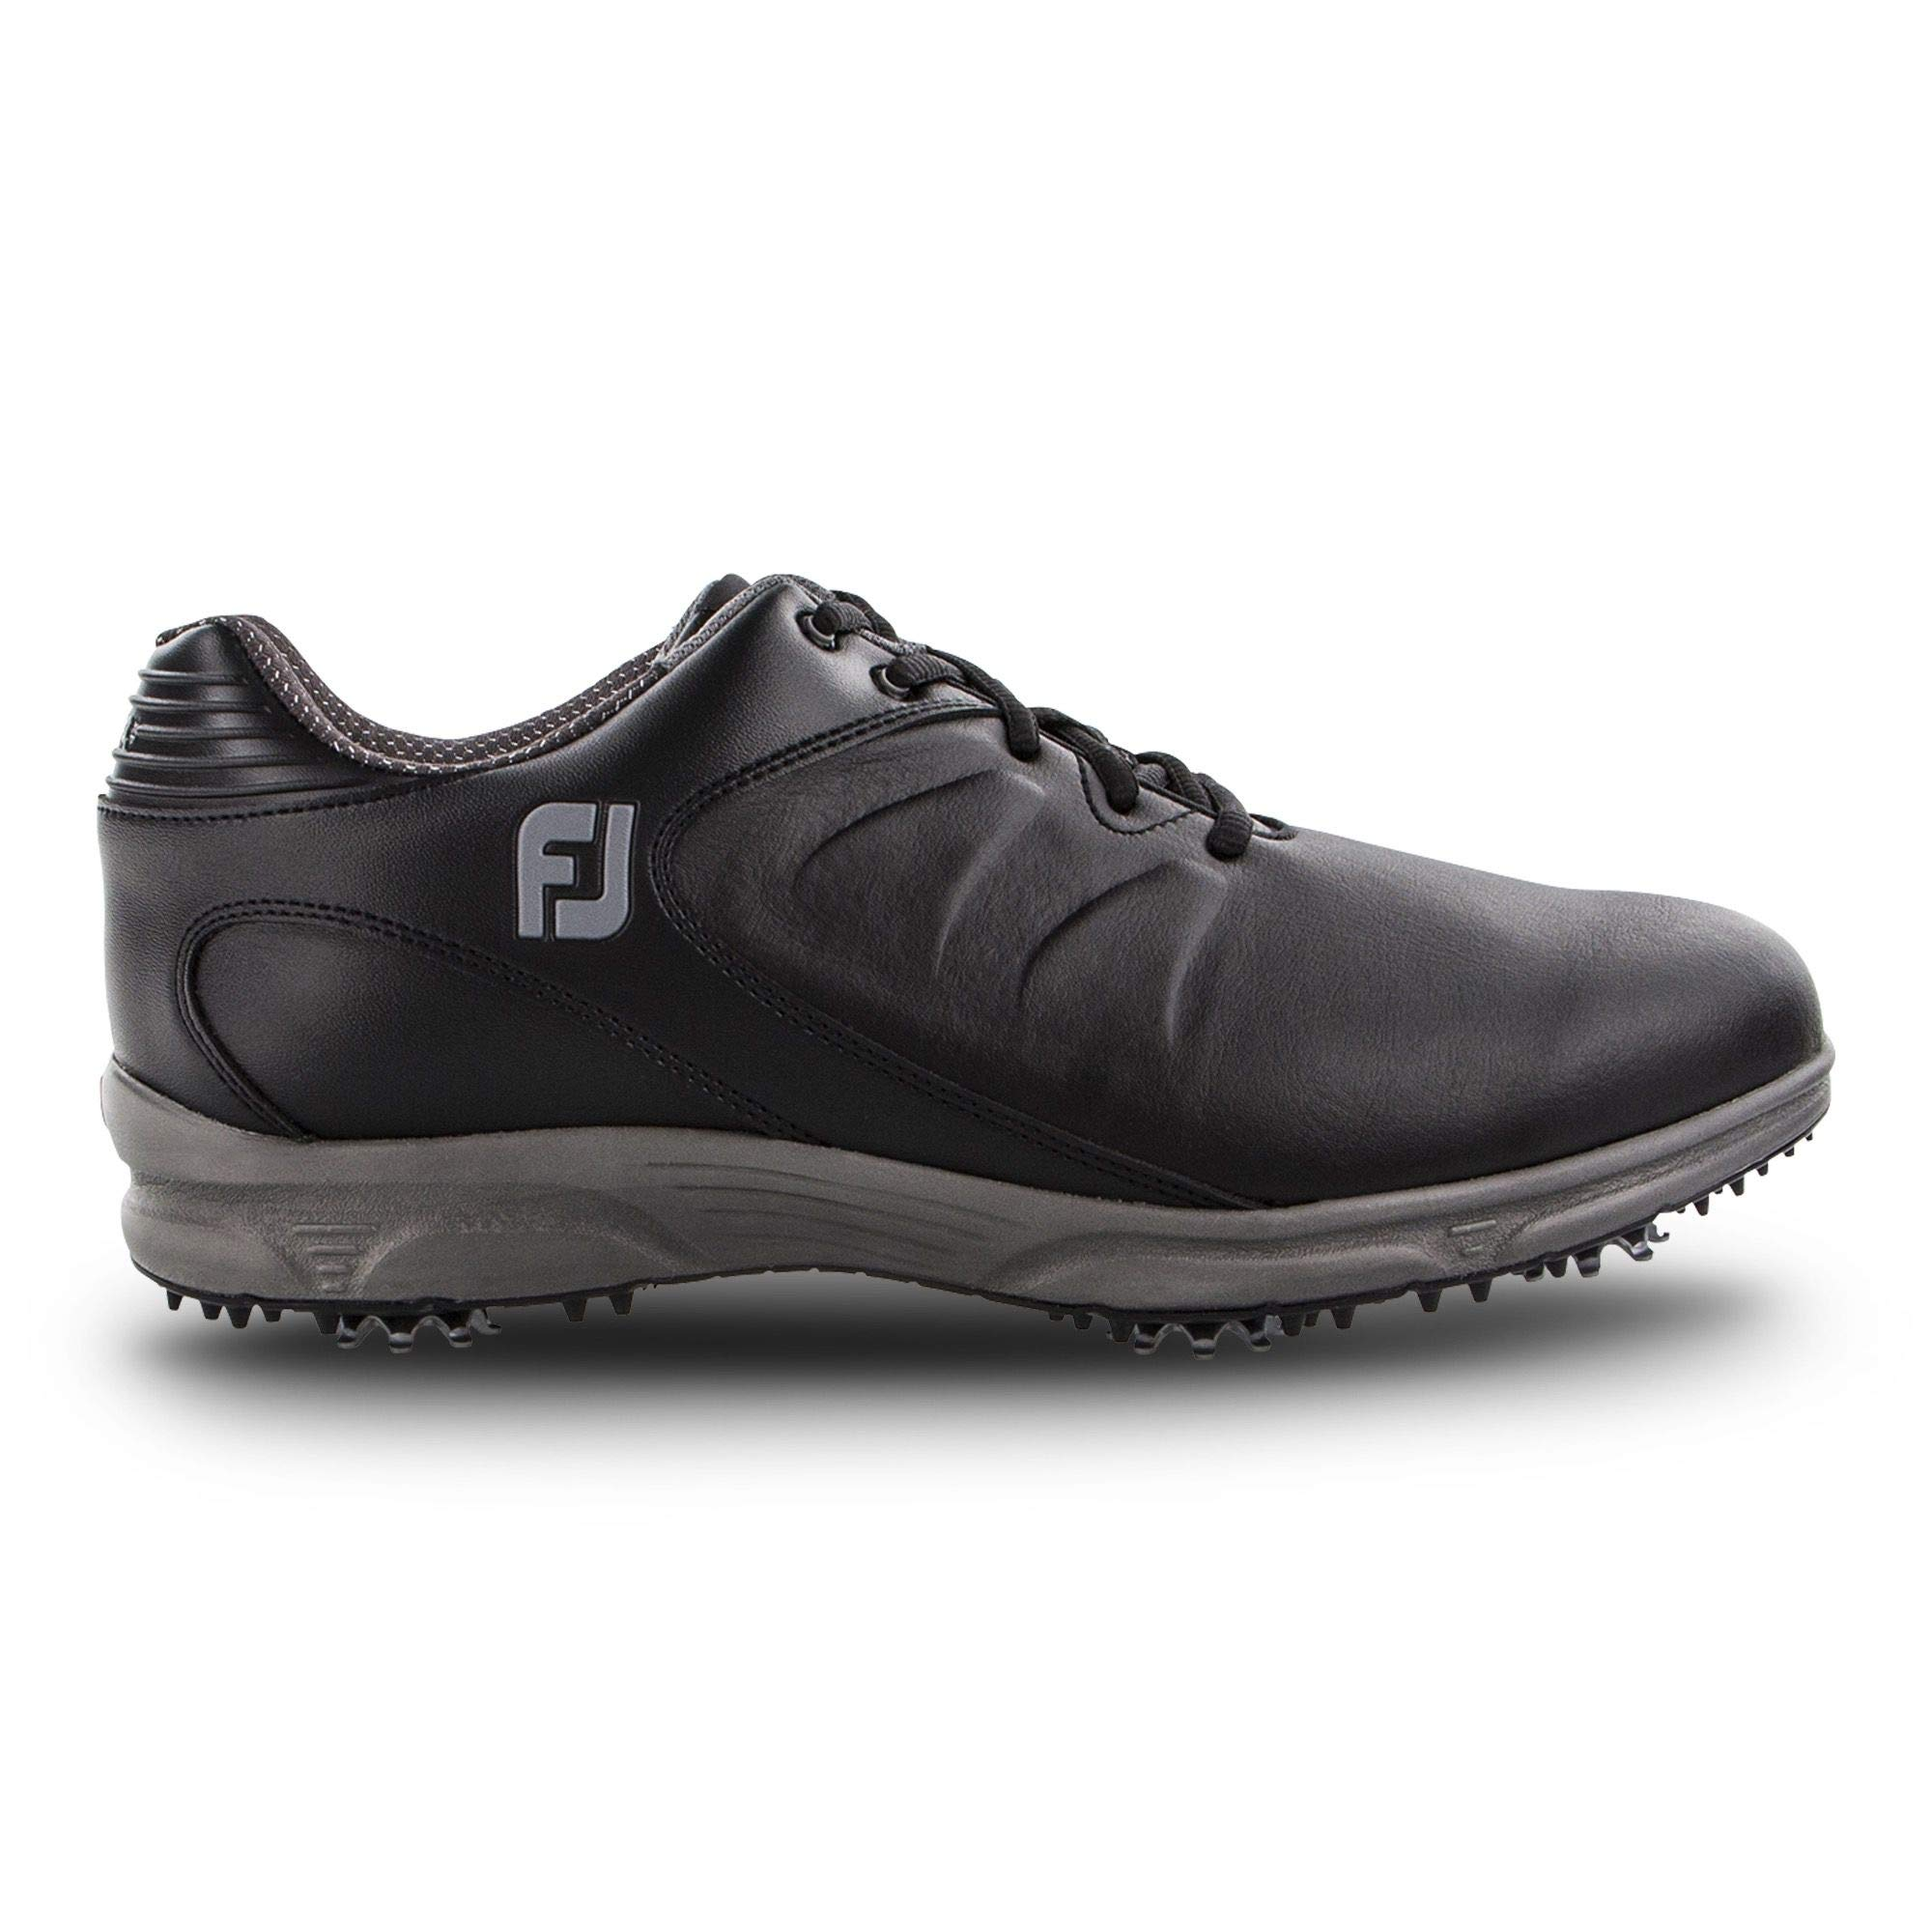 FootJoy Men's ARC XT Golf Shoes, Black, 8 XW by FootJoy